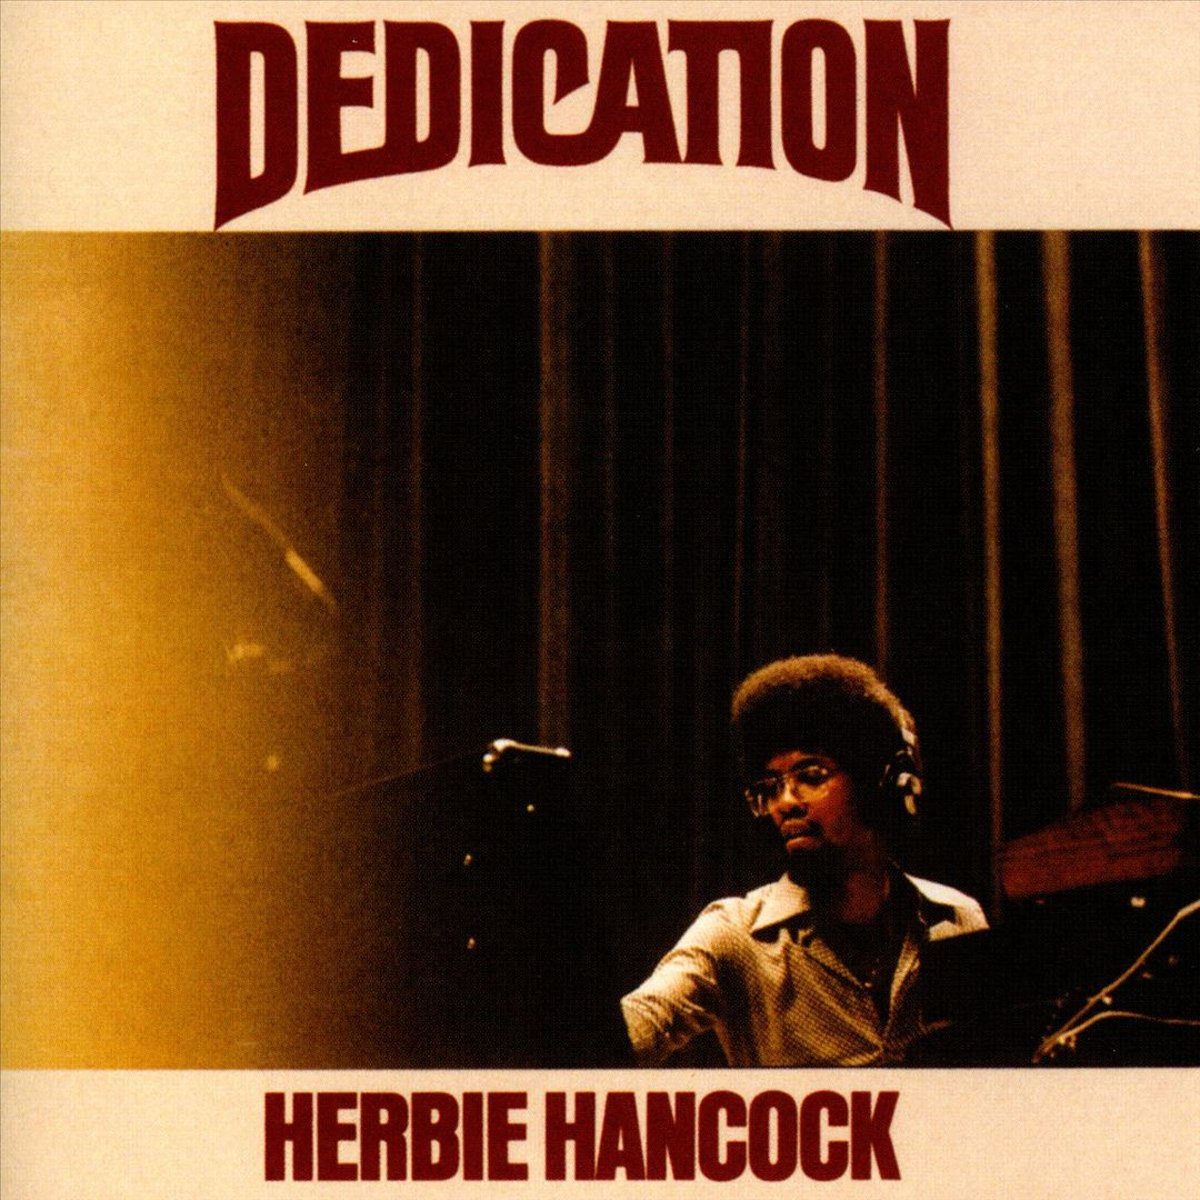 Herbie Hancock discography Dedication